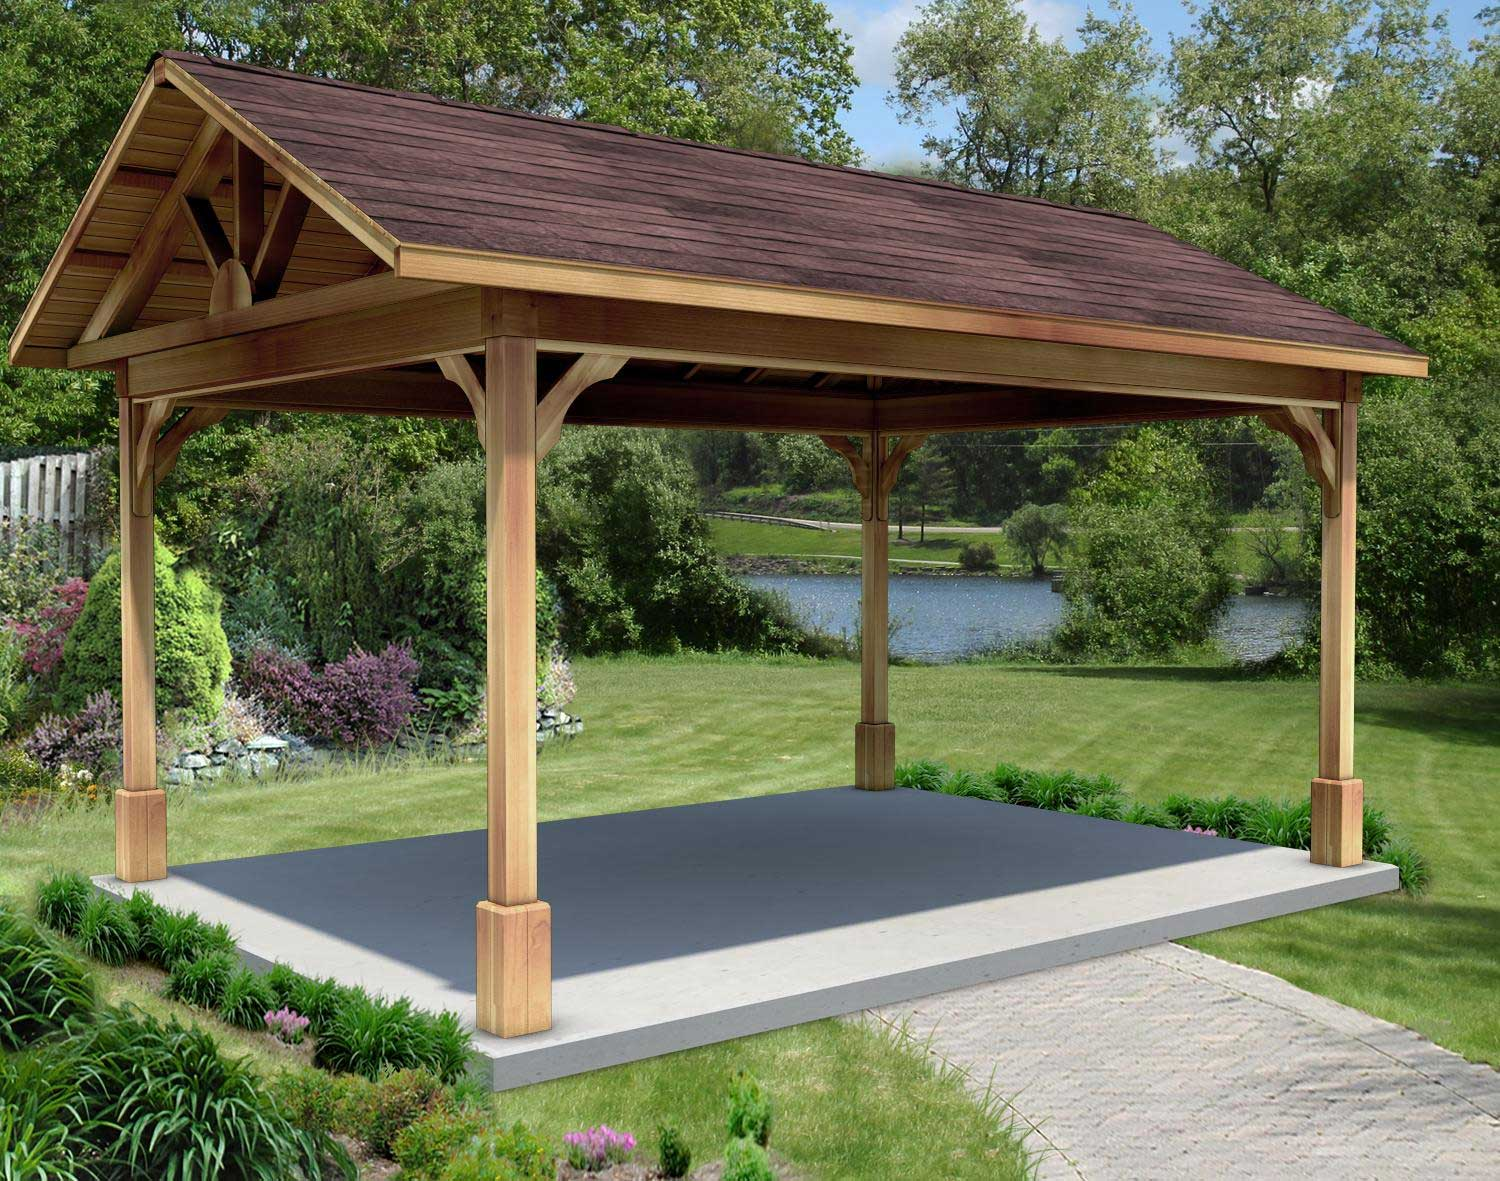 Red Cedar Gable Roof Open Rectangle Gazebos With Metal